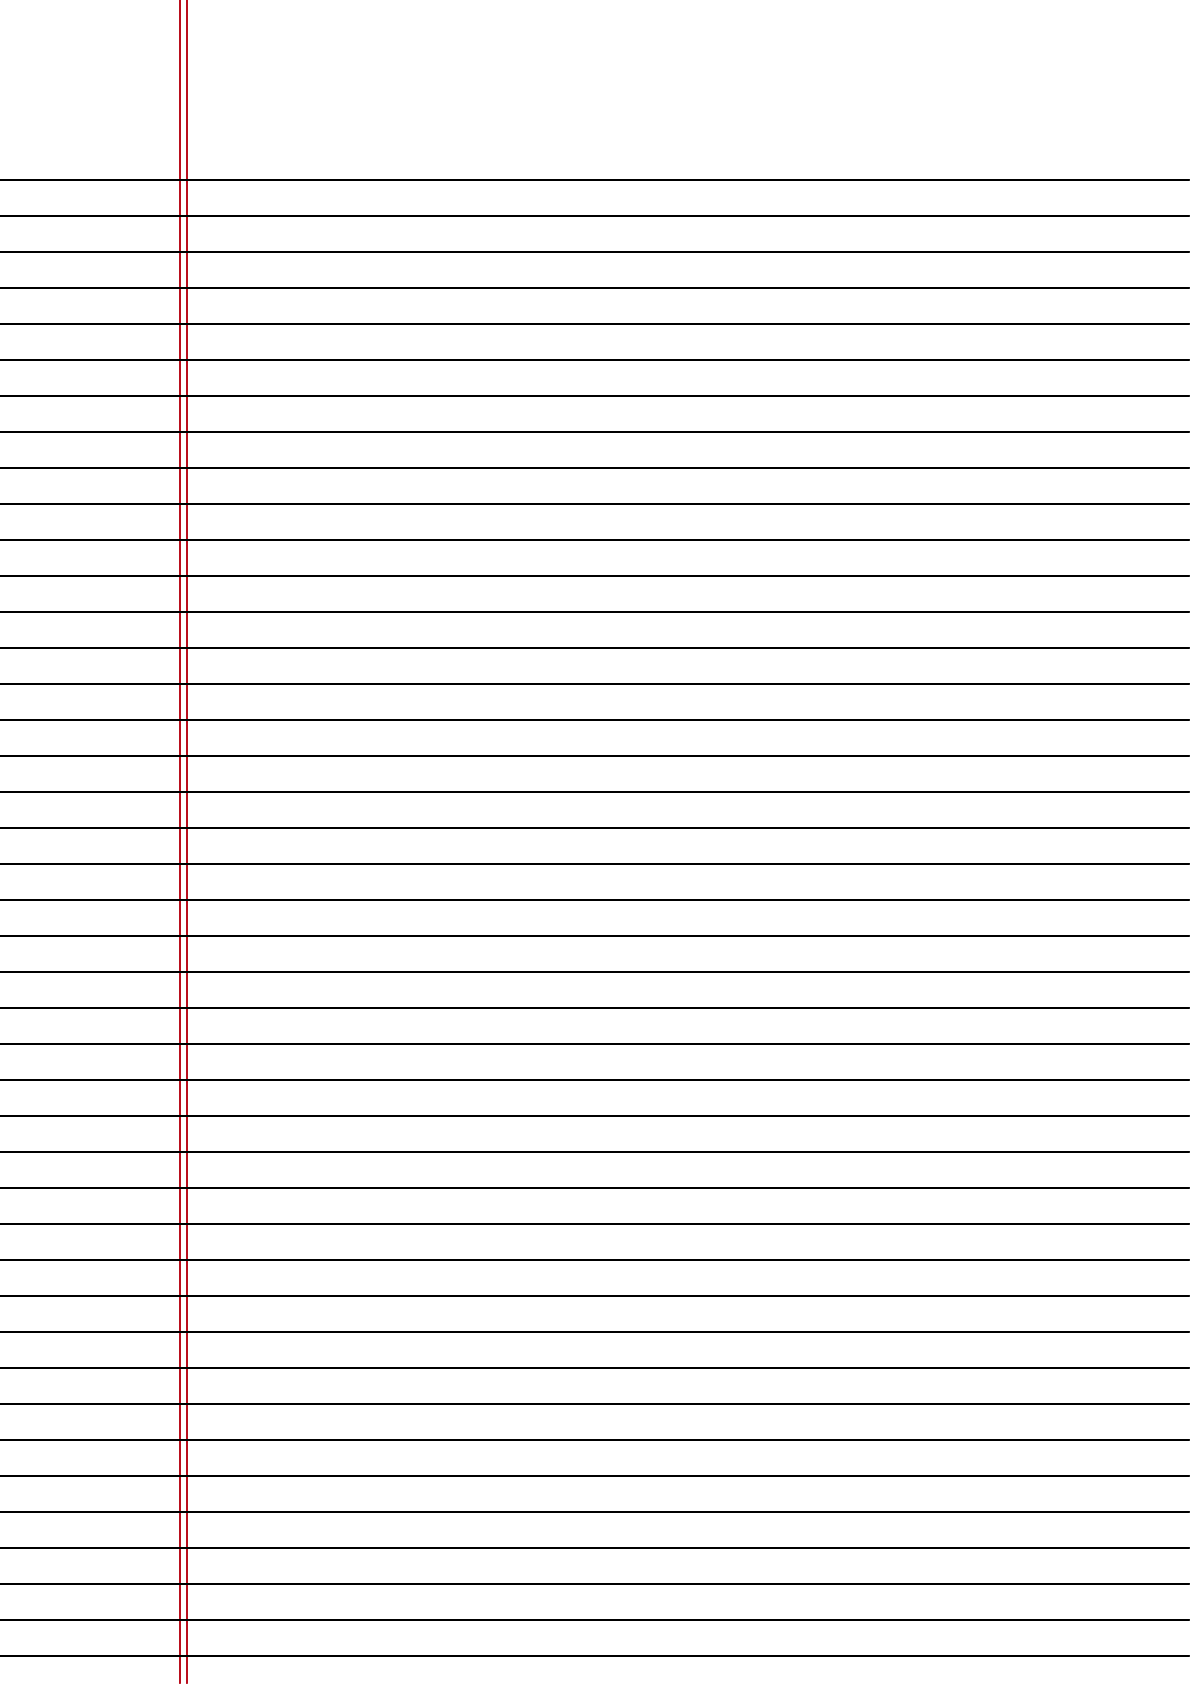 Narrow-Ruled Lined Paper on A4-Sized Paper in Portrait ...